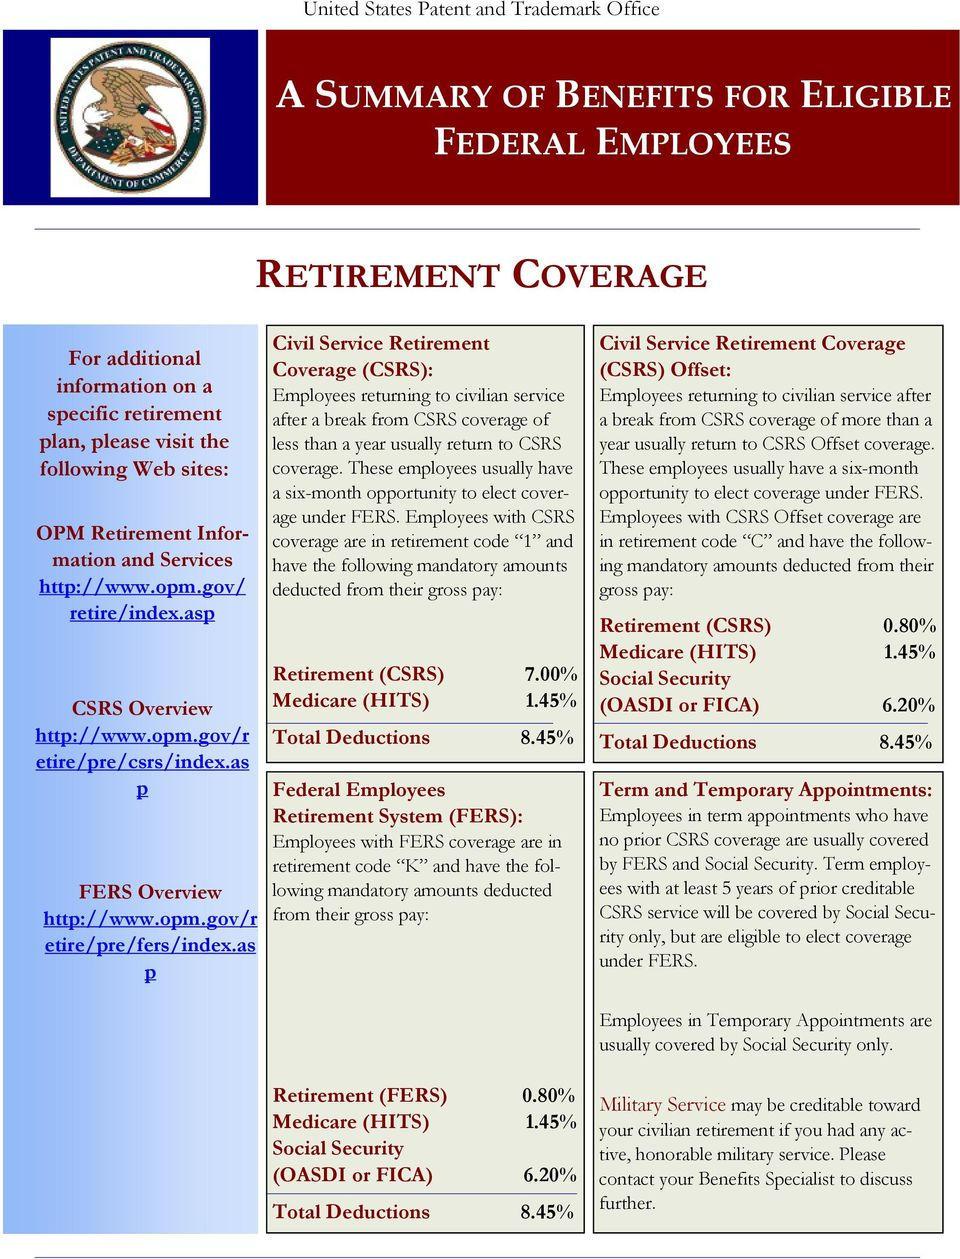 as p Civil Service Retirement Coverage (CSRS): Employees returning to civilian service after a break from CSRS coverage of less than a year usually return to CSRS coverage.